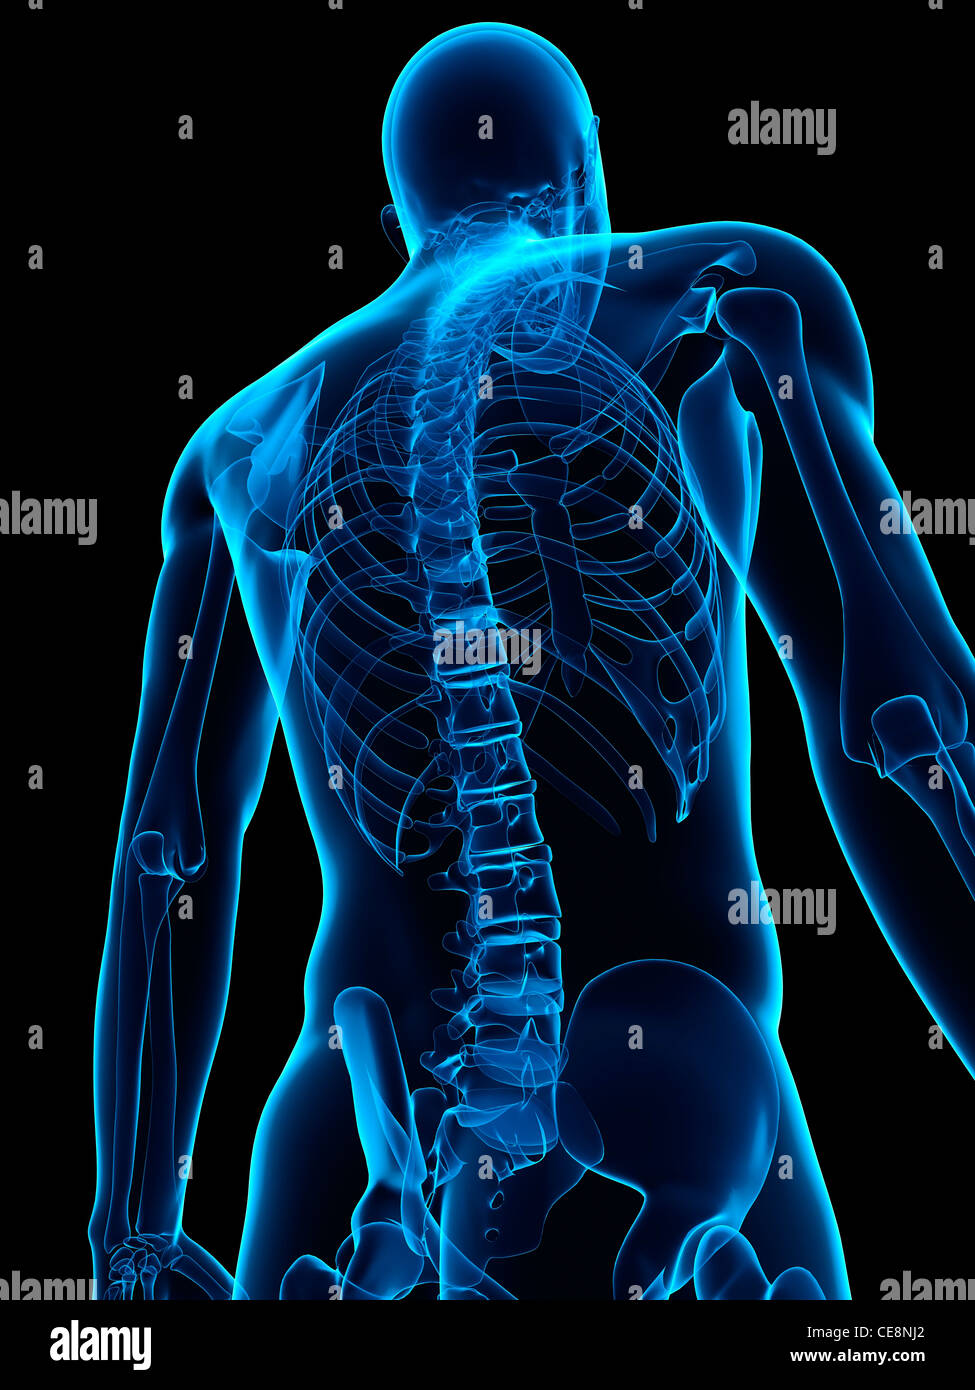 Bone Structure Of The Upper Body Stock Photos Bone Structure Of